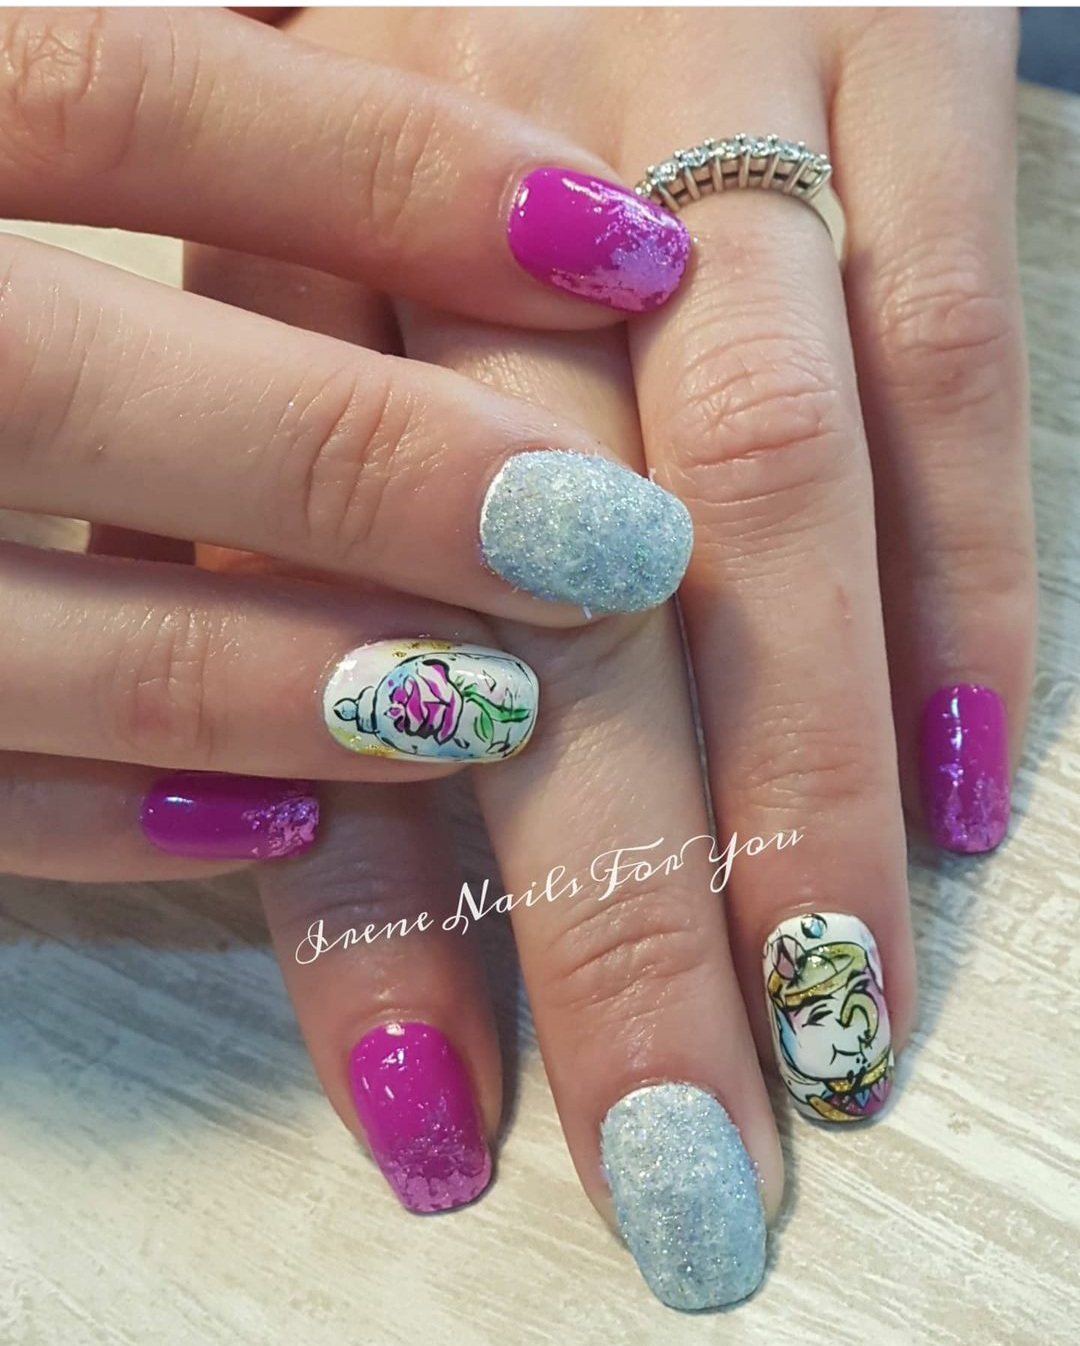 Irene Nails For You